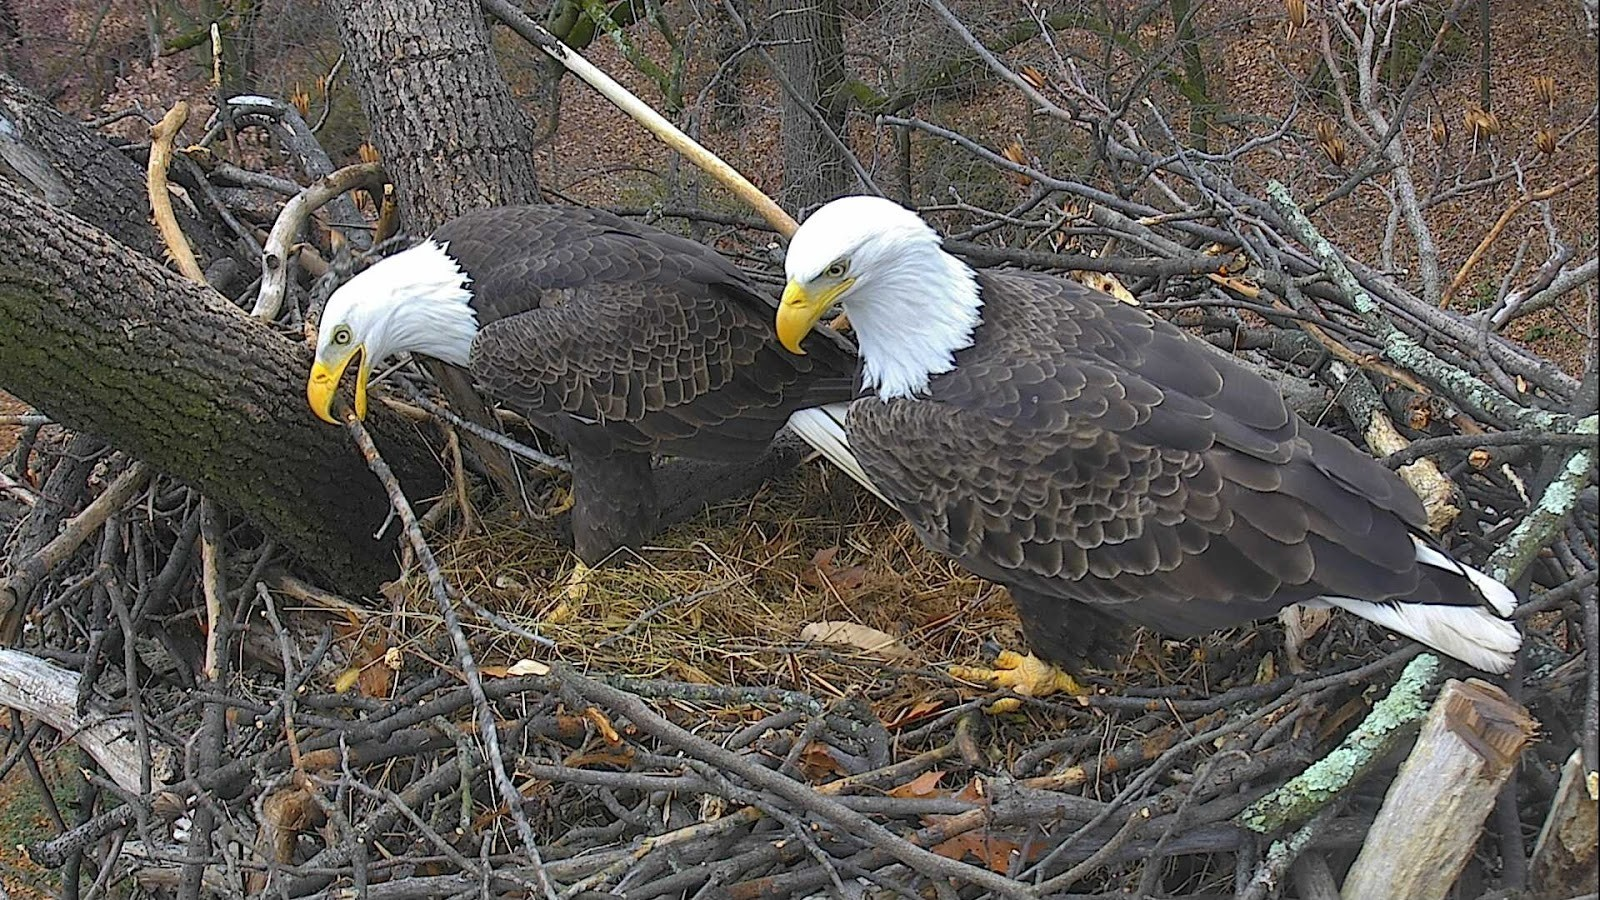 Join Bald Eagles Mr President The First Lady For The Official